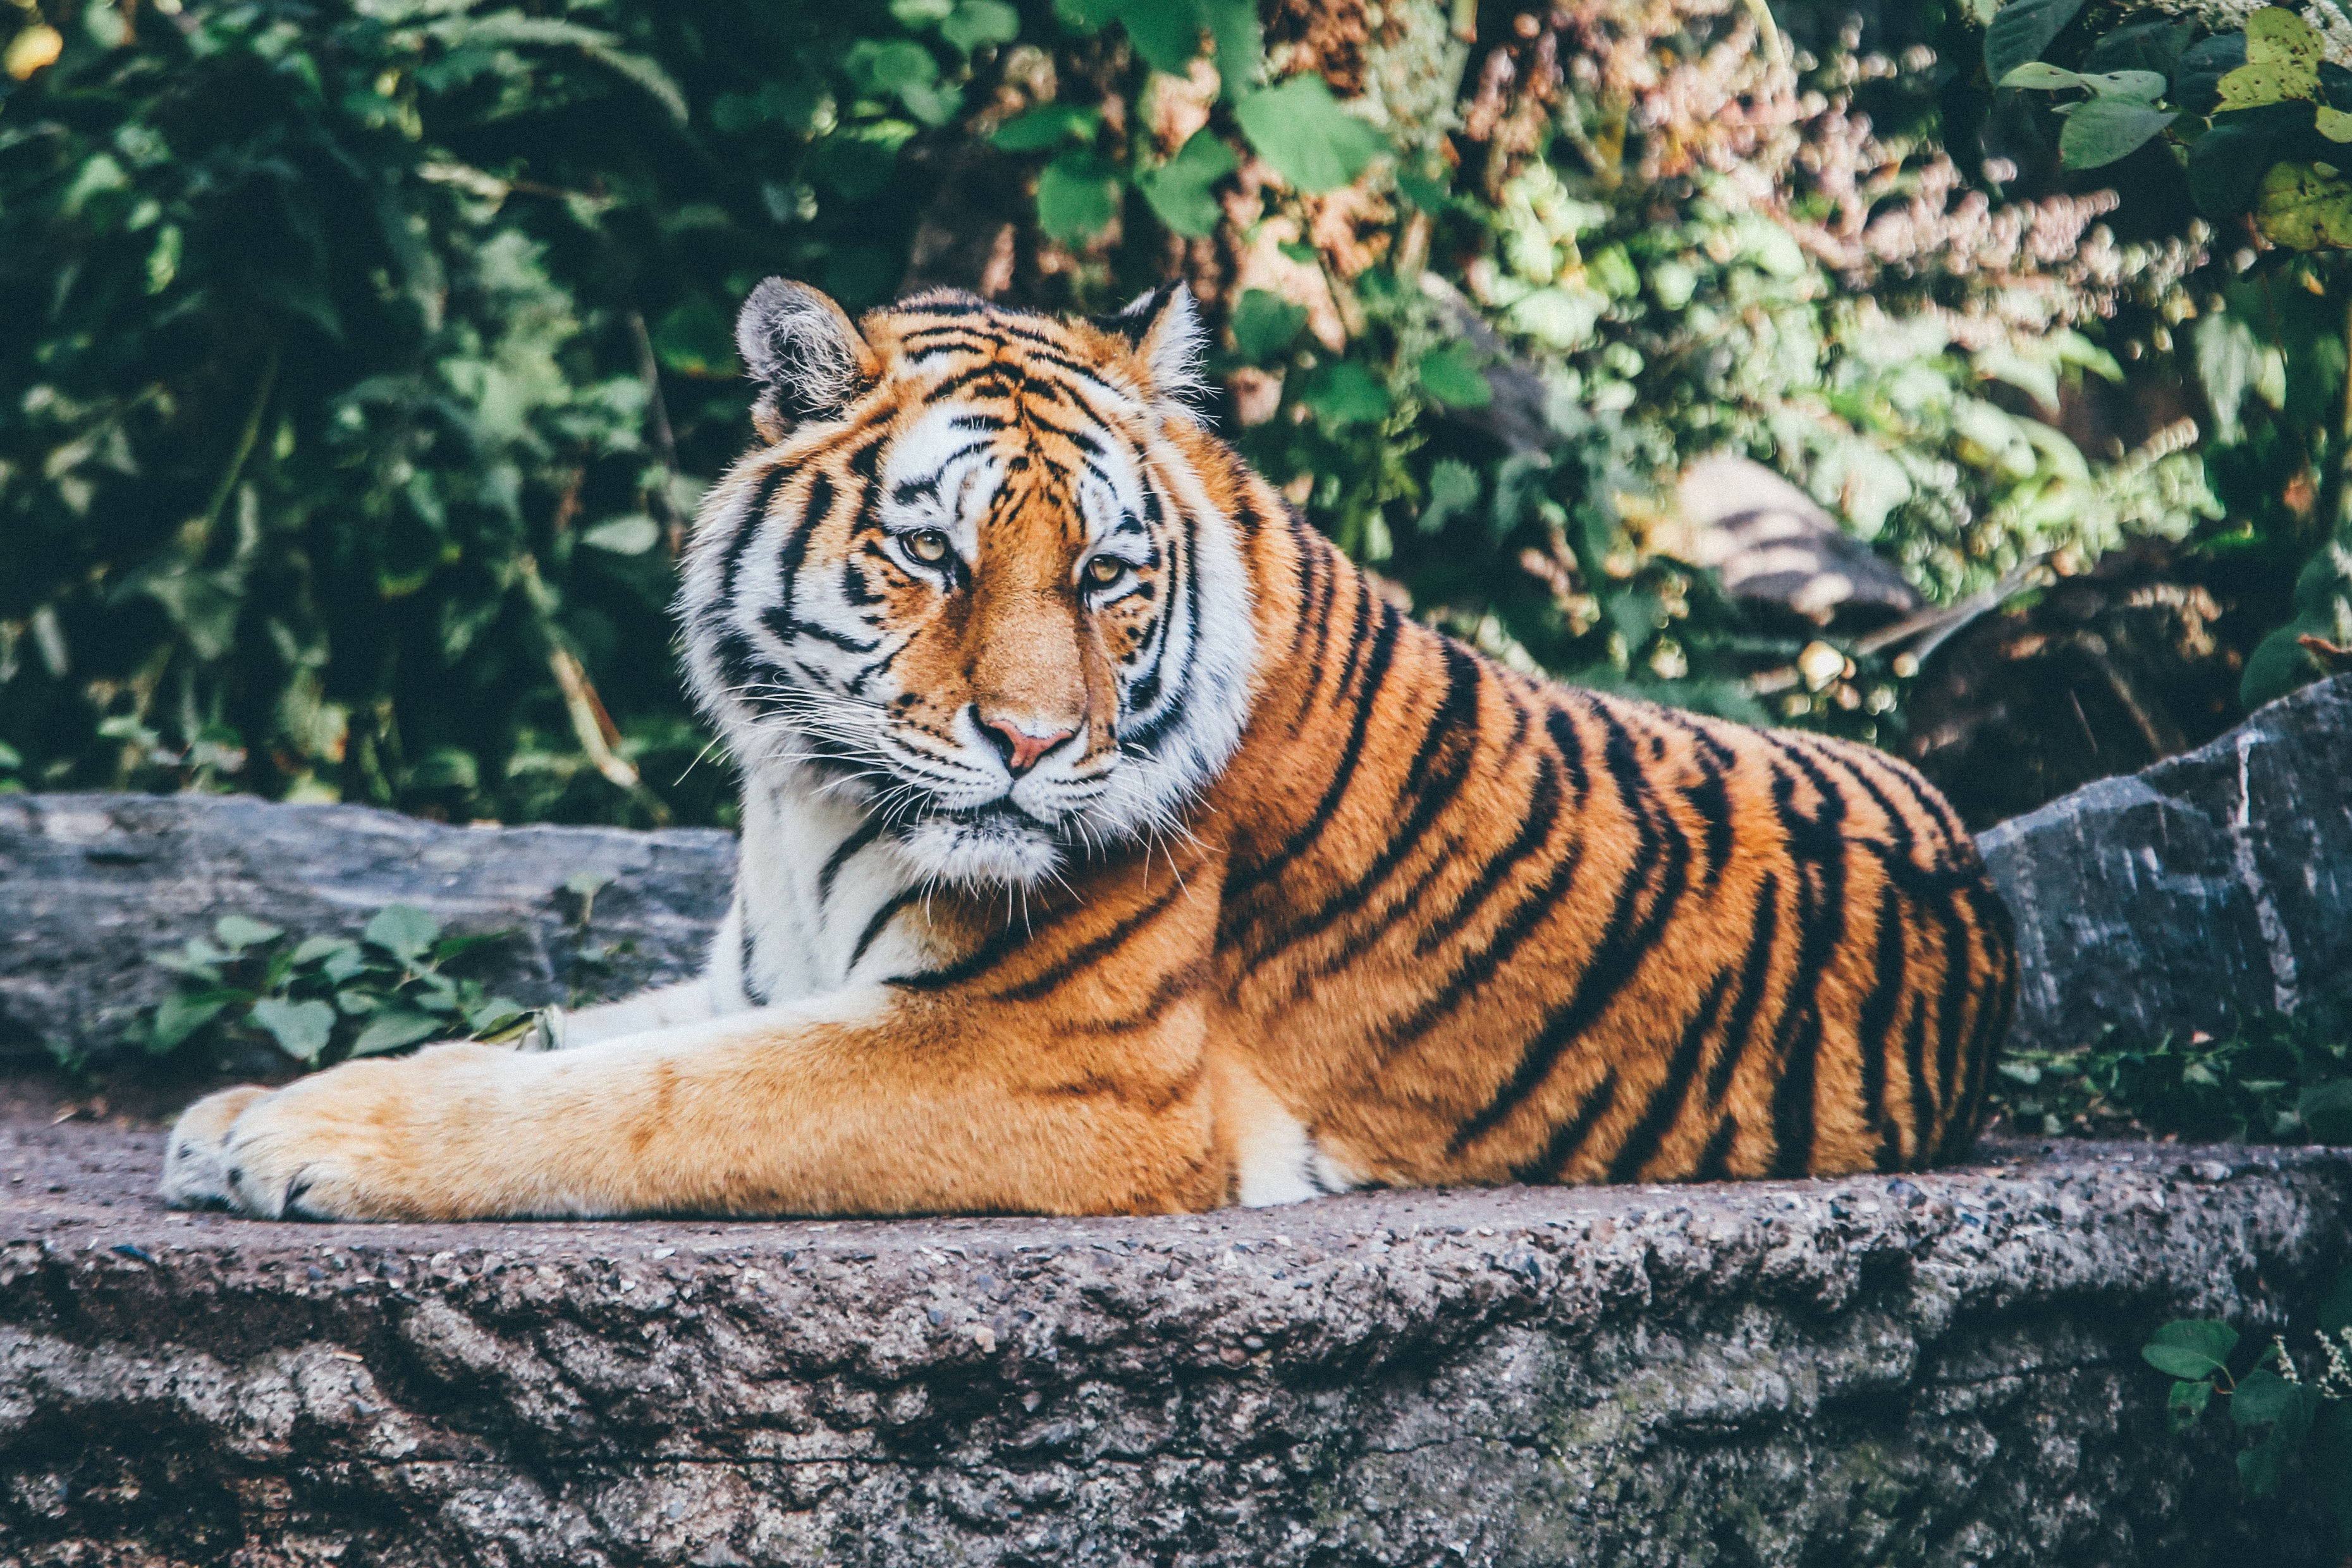 Tiger picture full movie hd download free pagalworld com